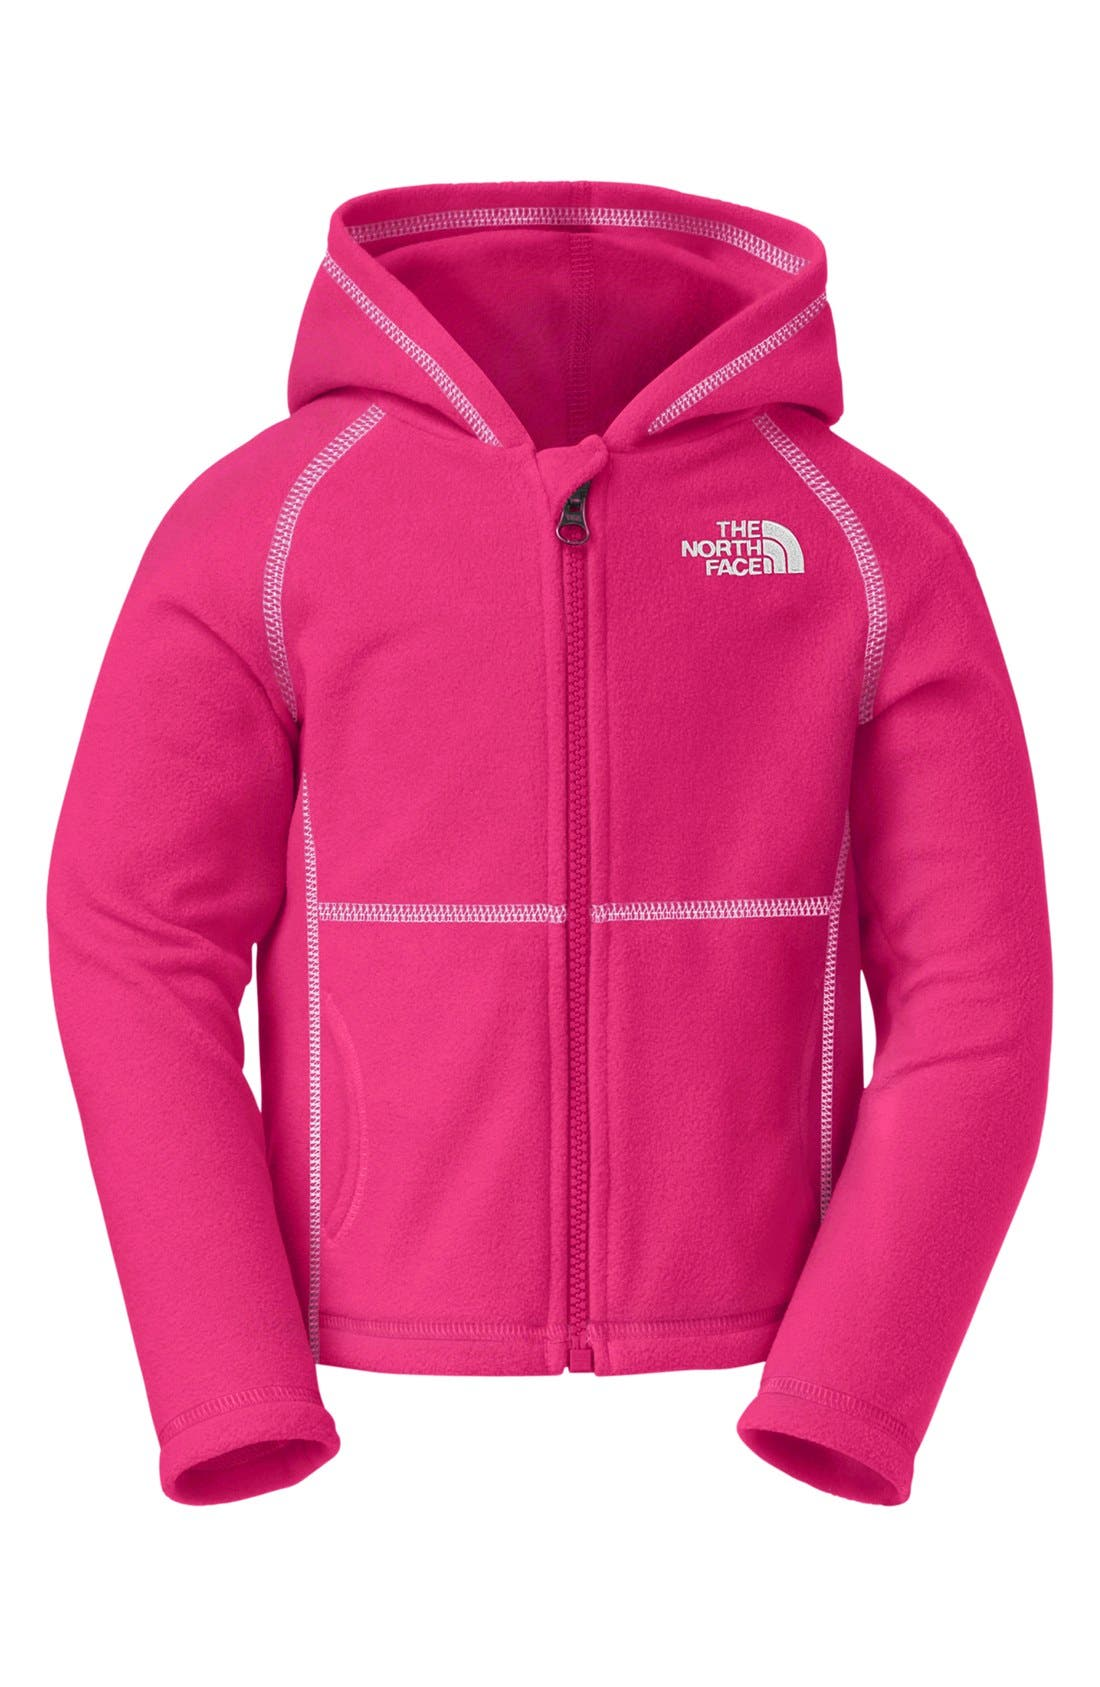 Alternate Image 1 Selected - The North Face 'Glacier' Full Zip Hoodie (Toddler Girls)